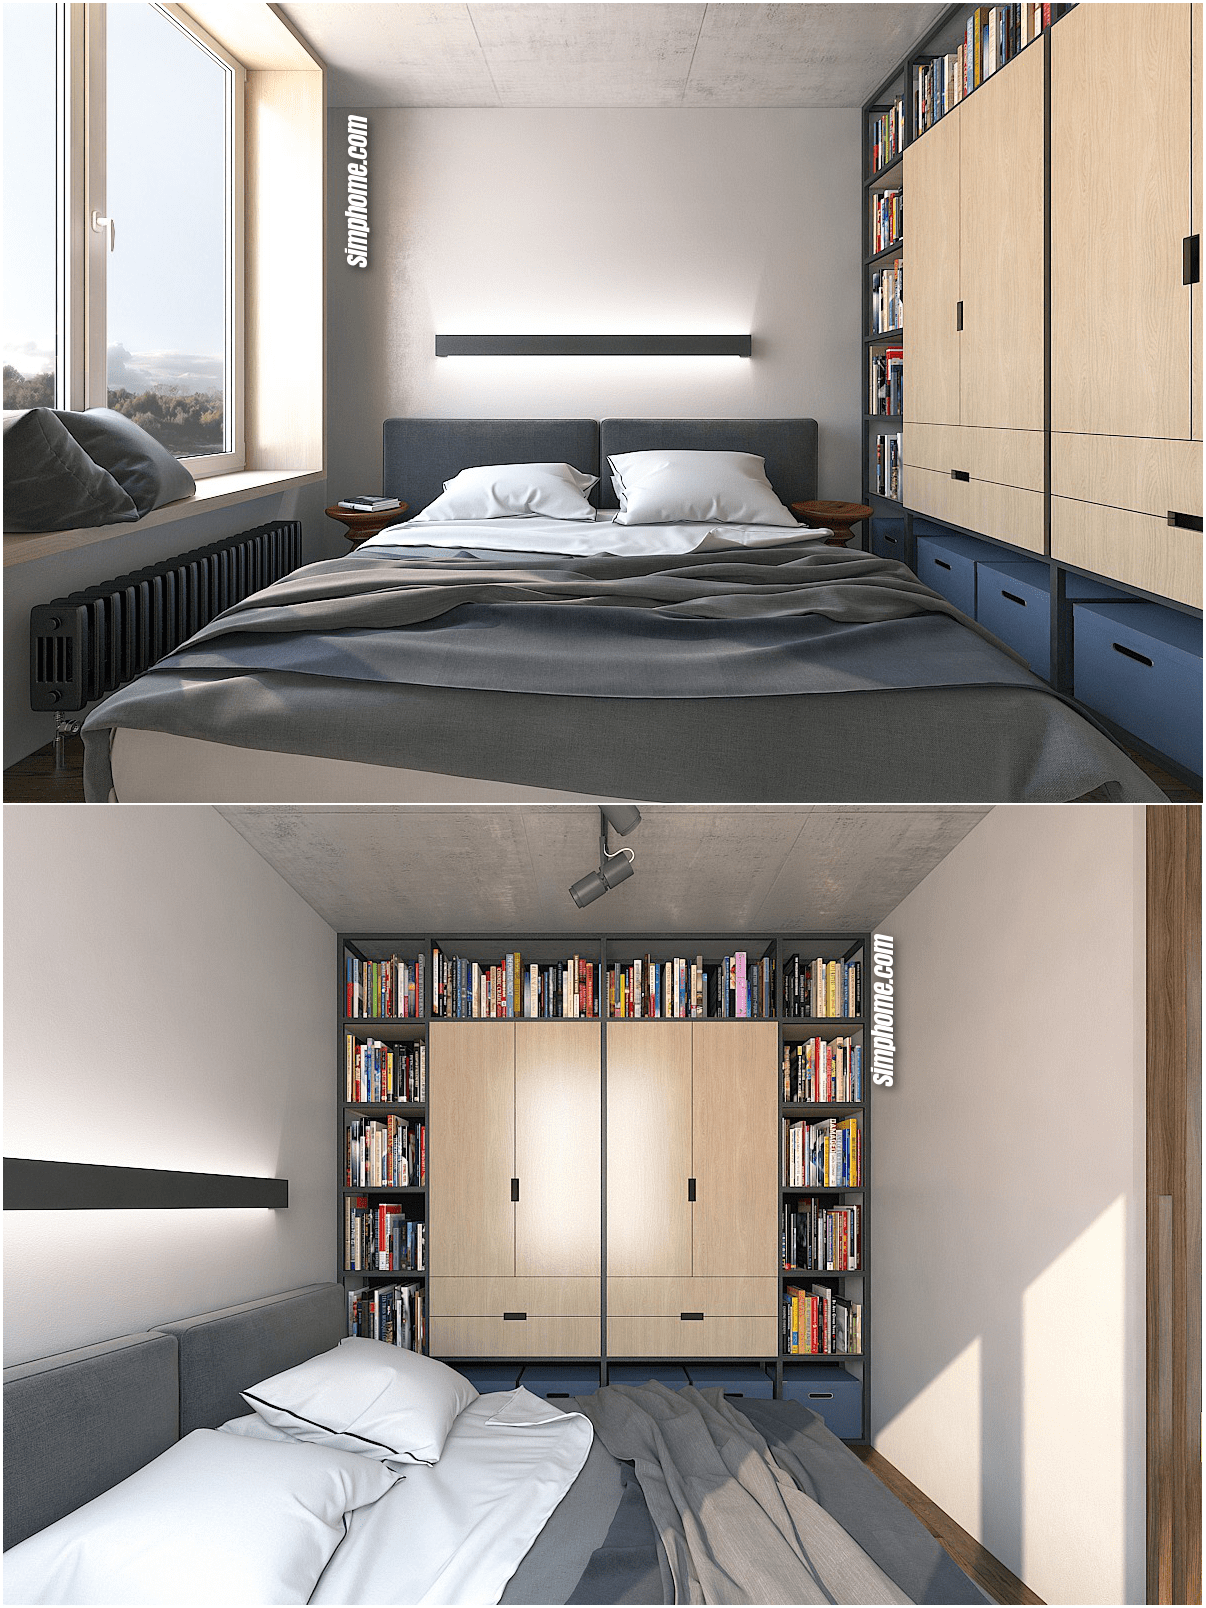 4.Simphome.com Think about a Built in Wardrobe and Bookshelves Combo